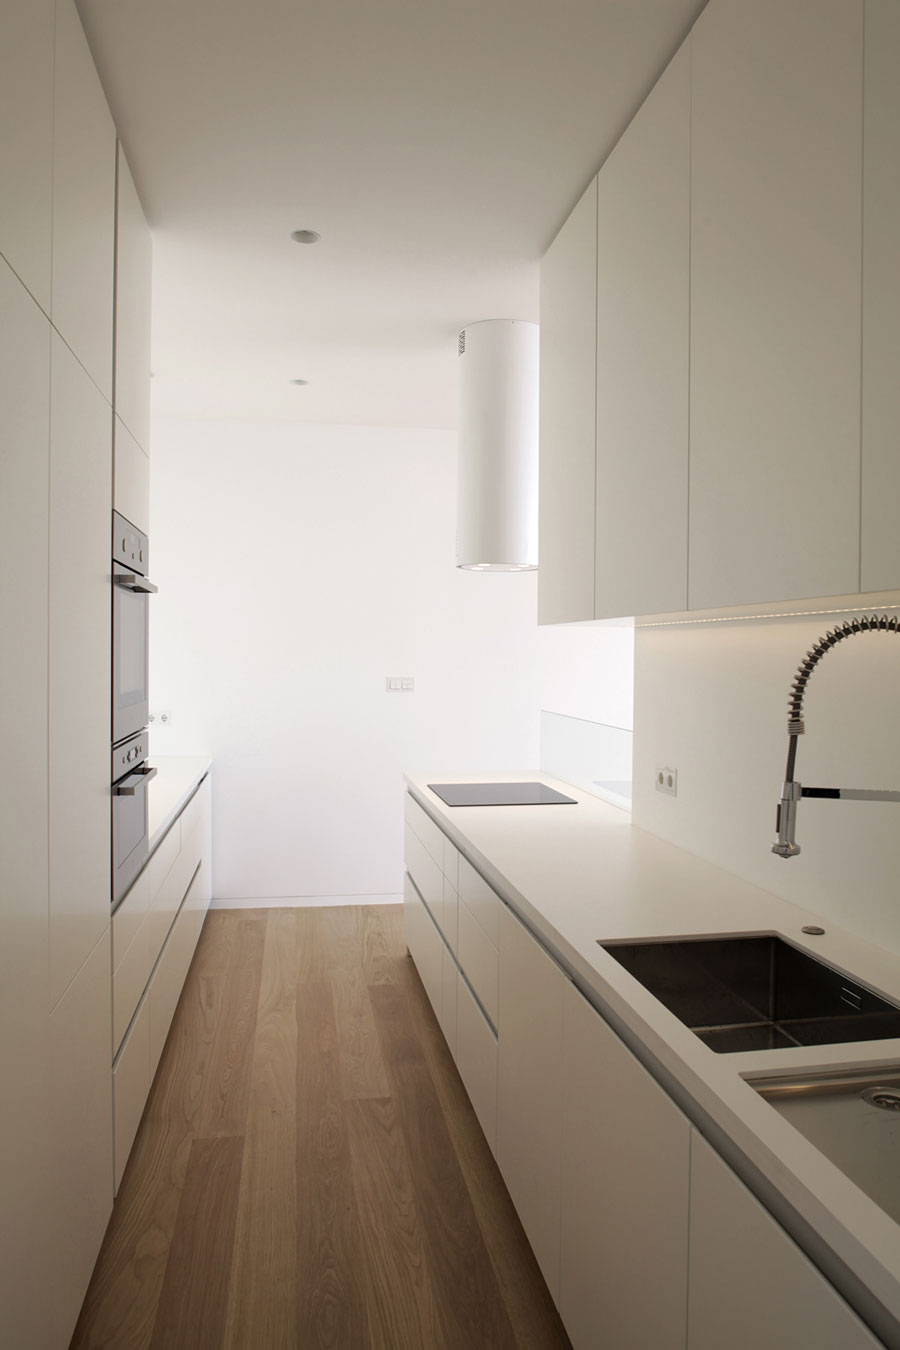 Unlike other kitchen types, galley layouts are long, narrow and less flexible